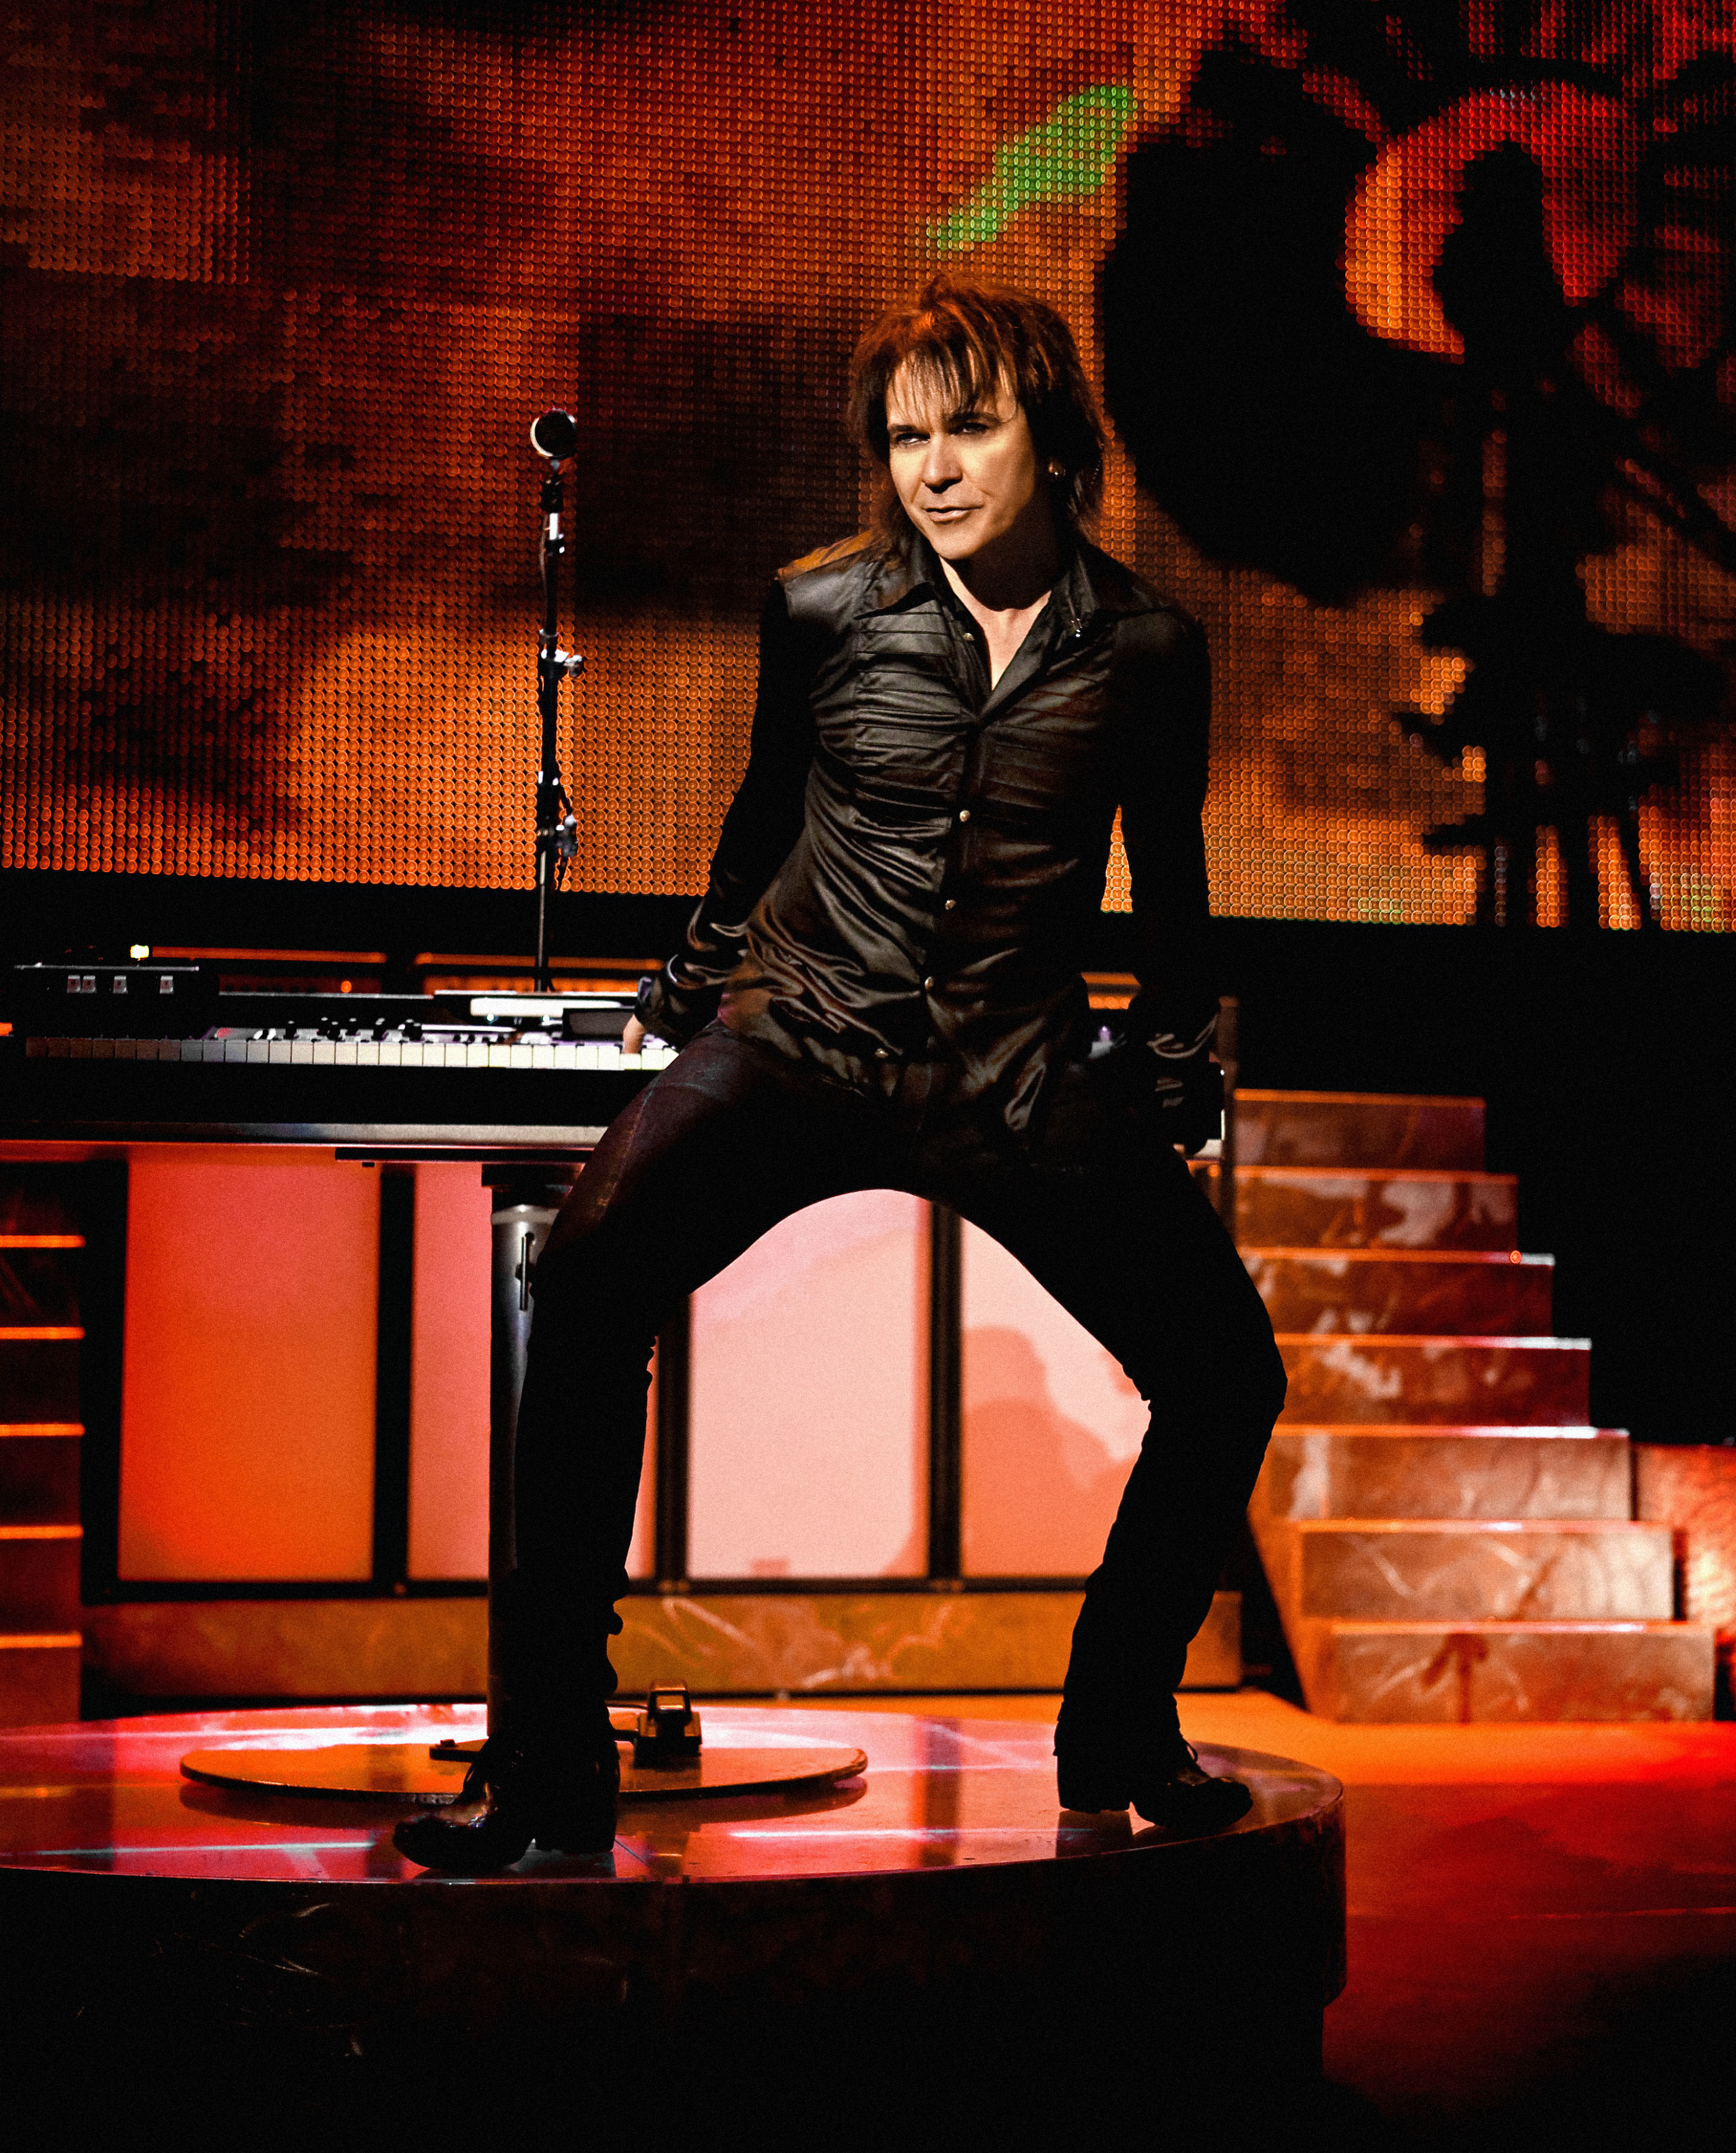 Lawrence Gowan Styx Denver